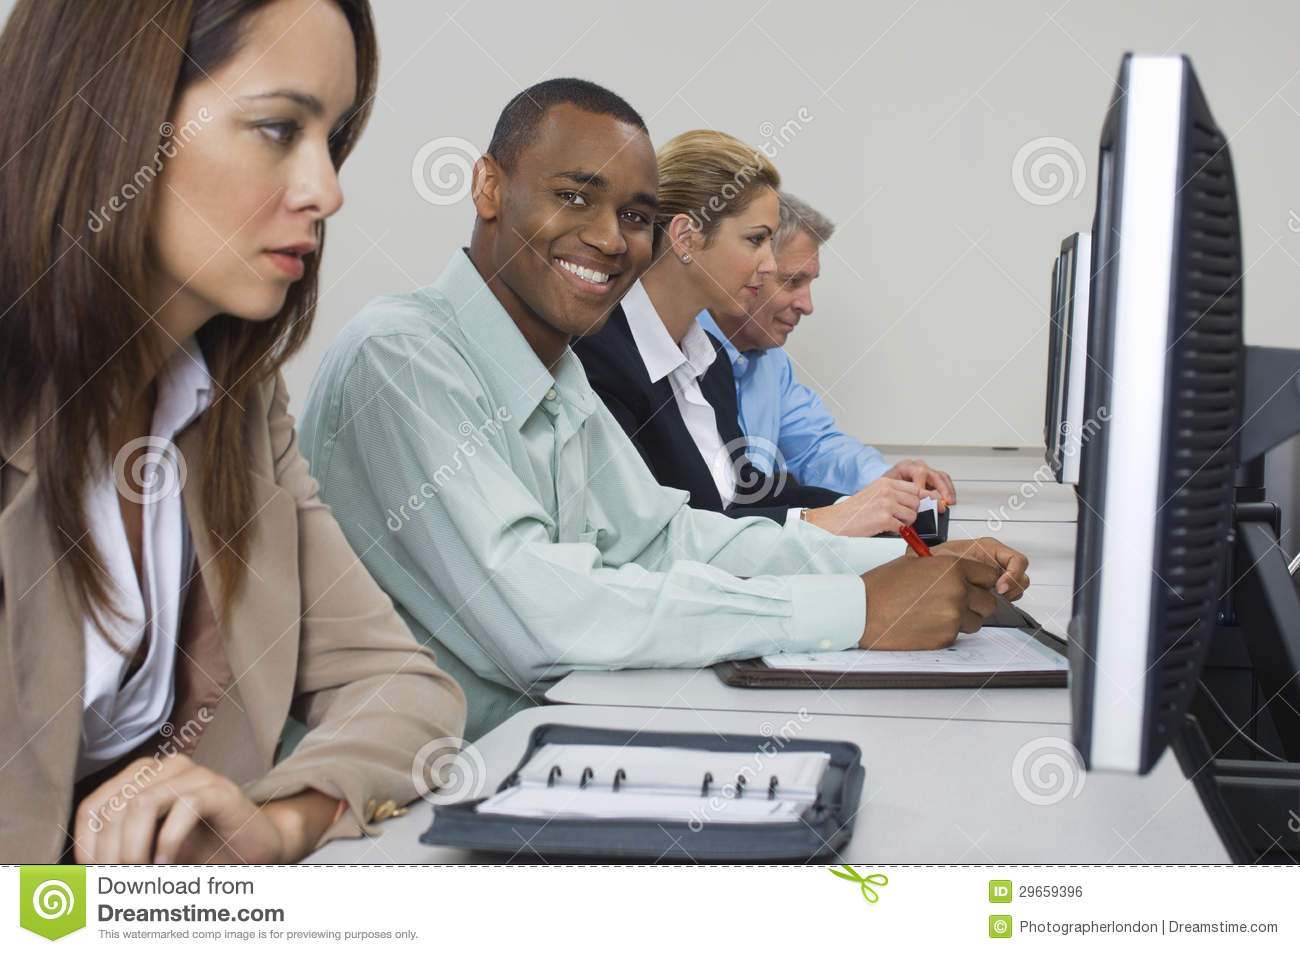 Business People Using Computers In Classroom Royalty Free Stock Image